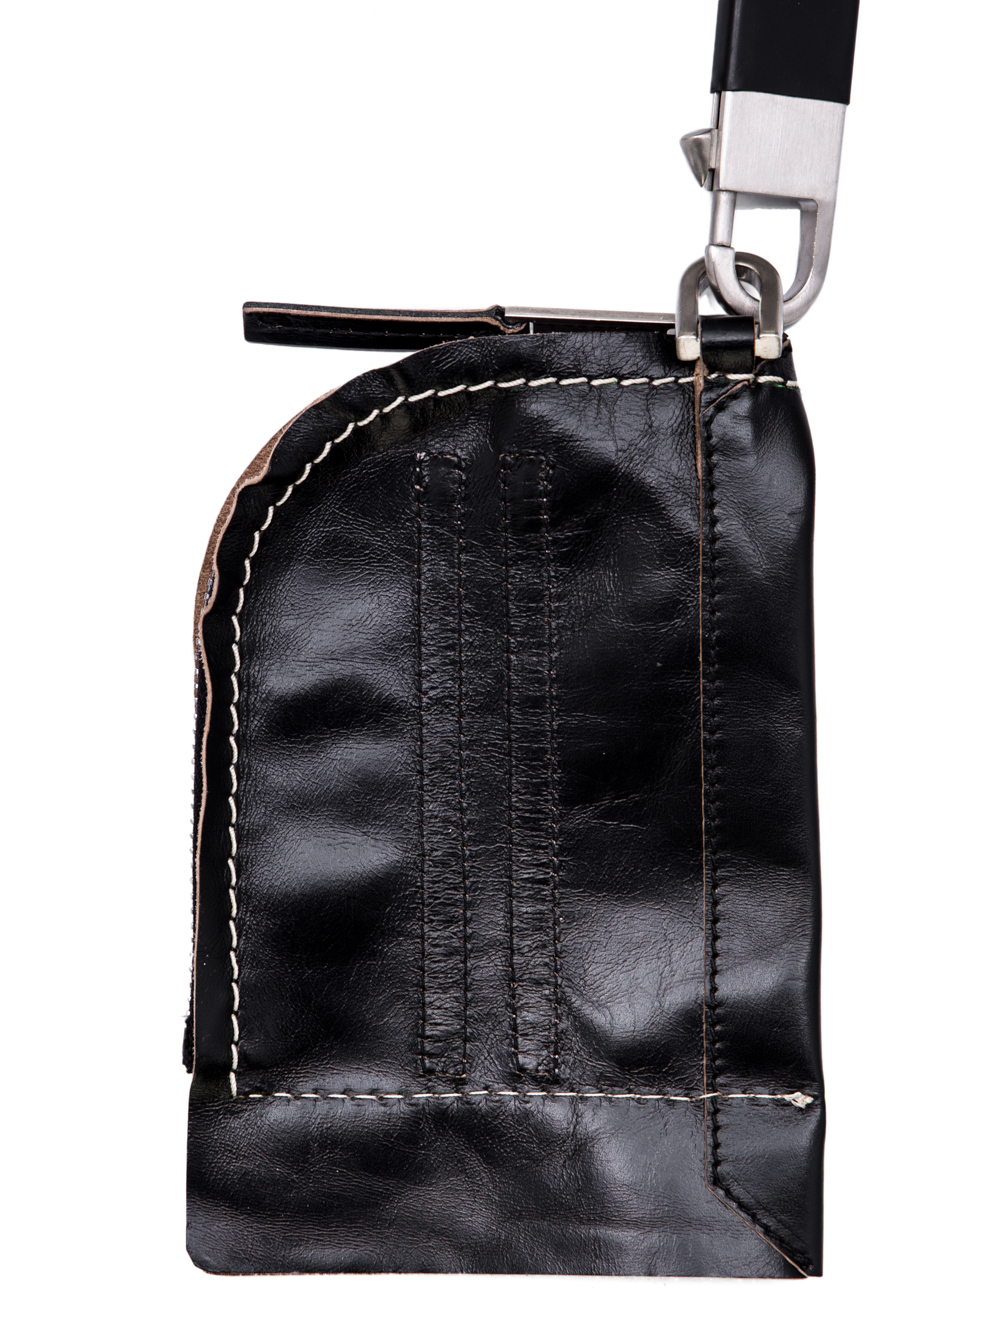 RICK OWENS OFF-THE-RUNWAY NECKWALLET IN BLACK HORSE LEATHER